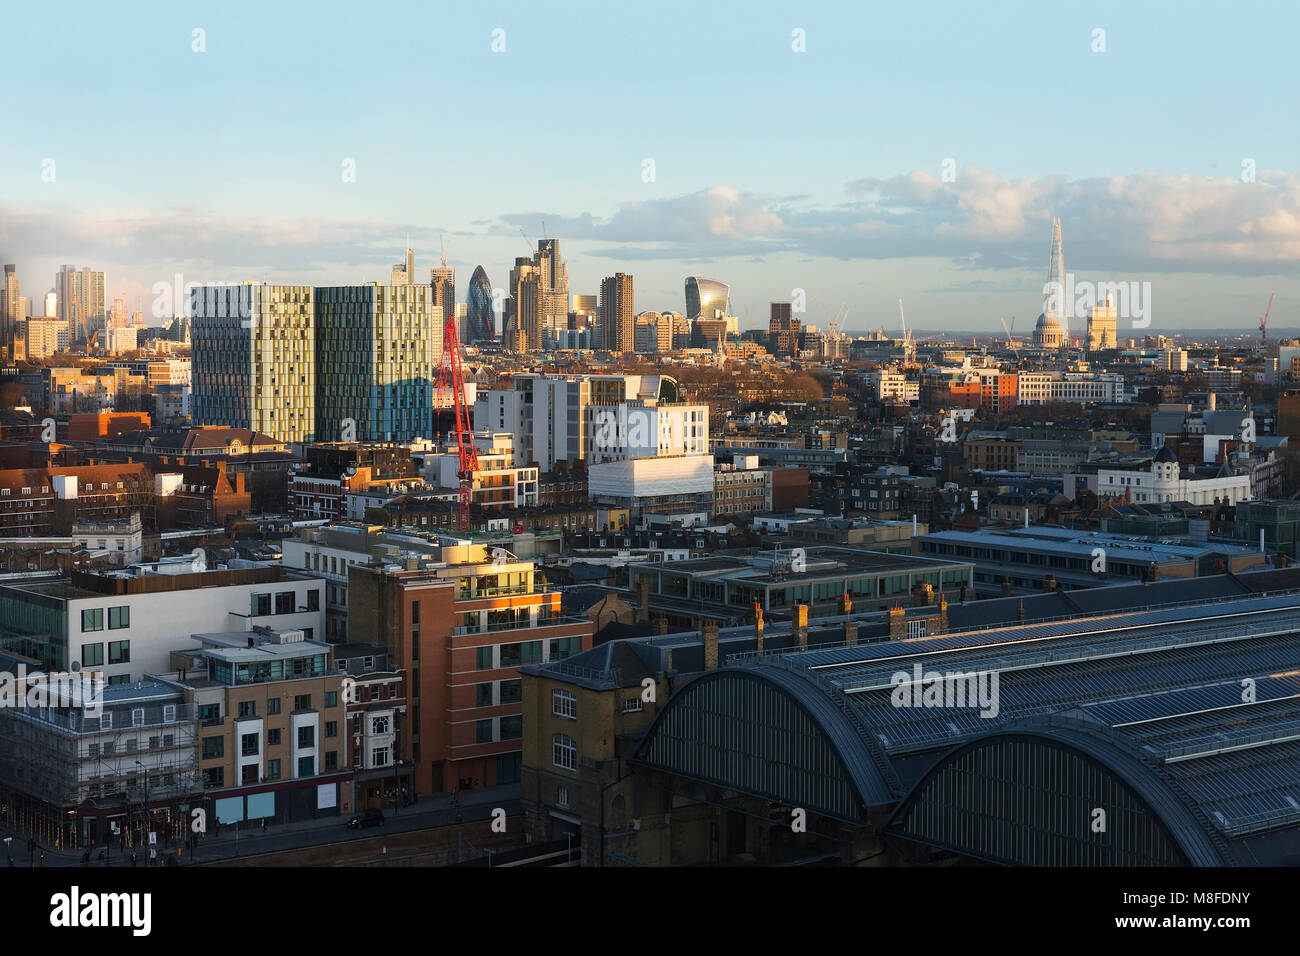 High Viewpoint of the City of London from King's Cross on a clear sunny evening in March 2018 - Stock Image